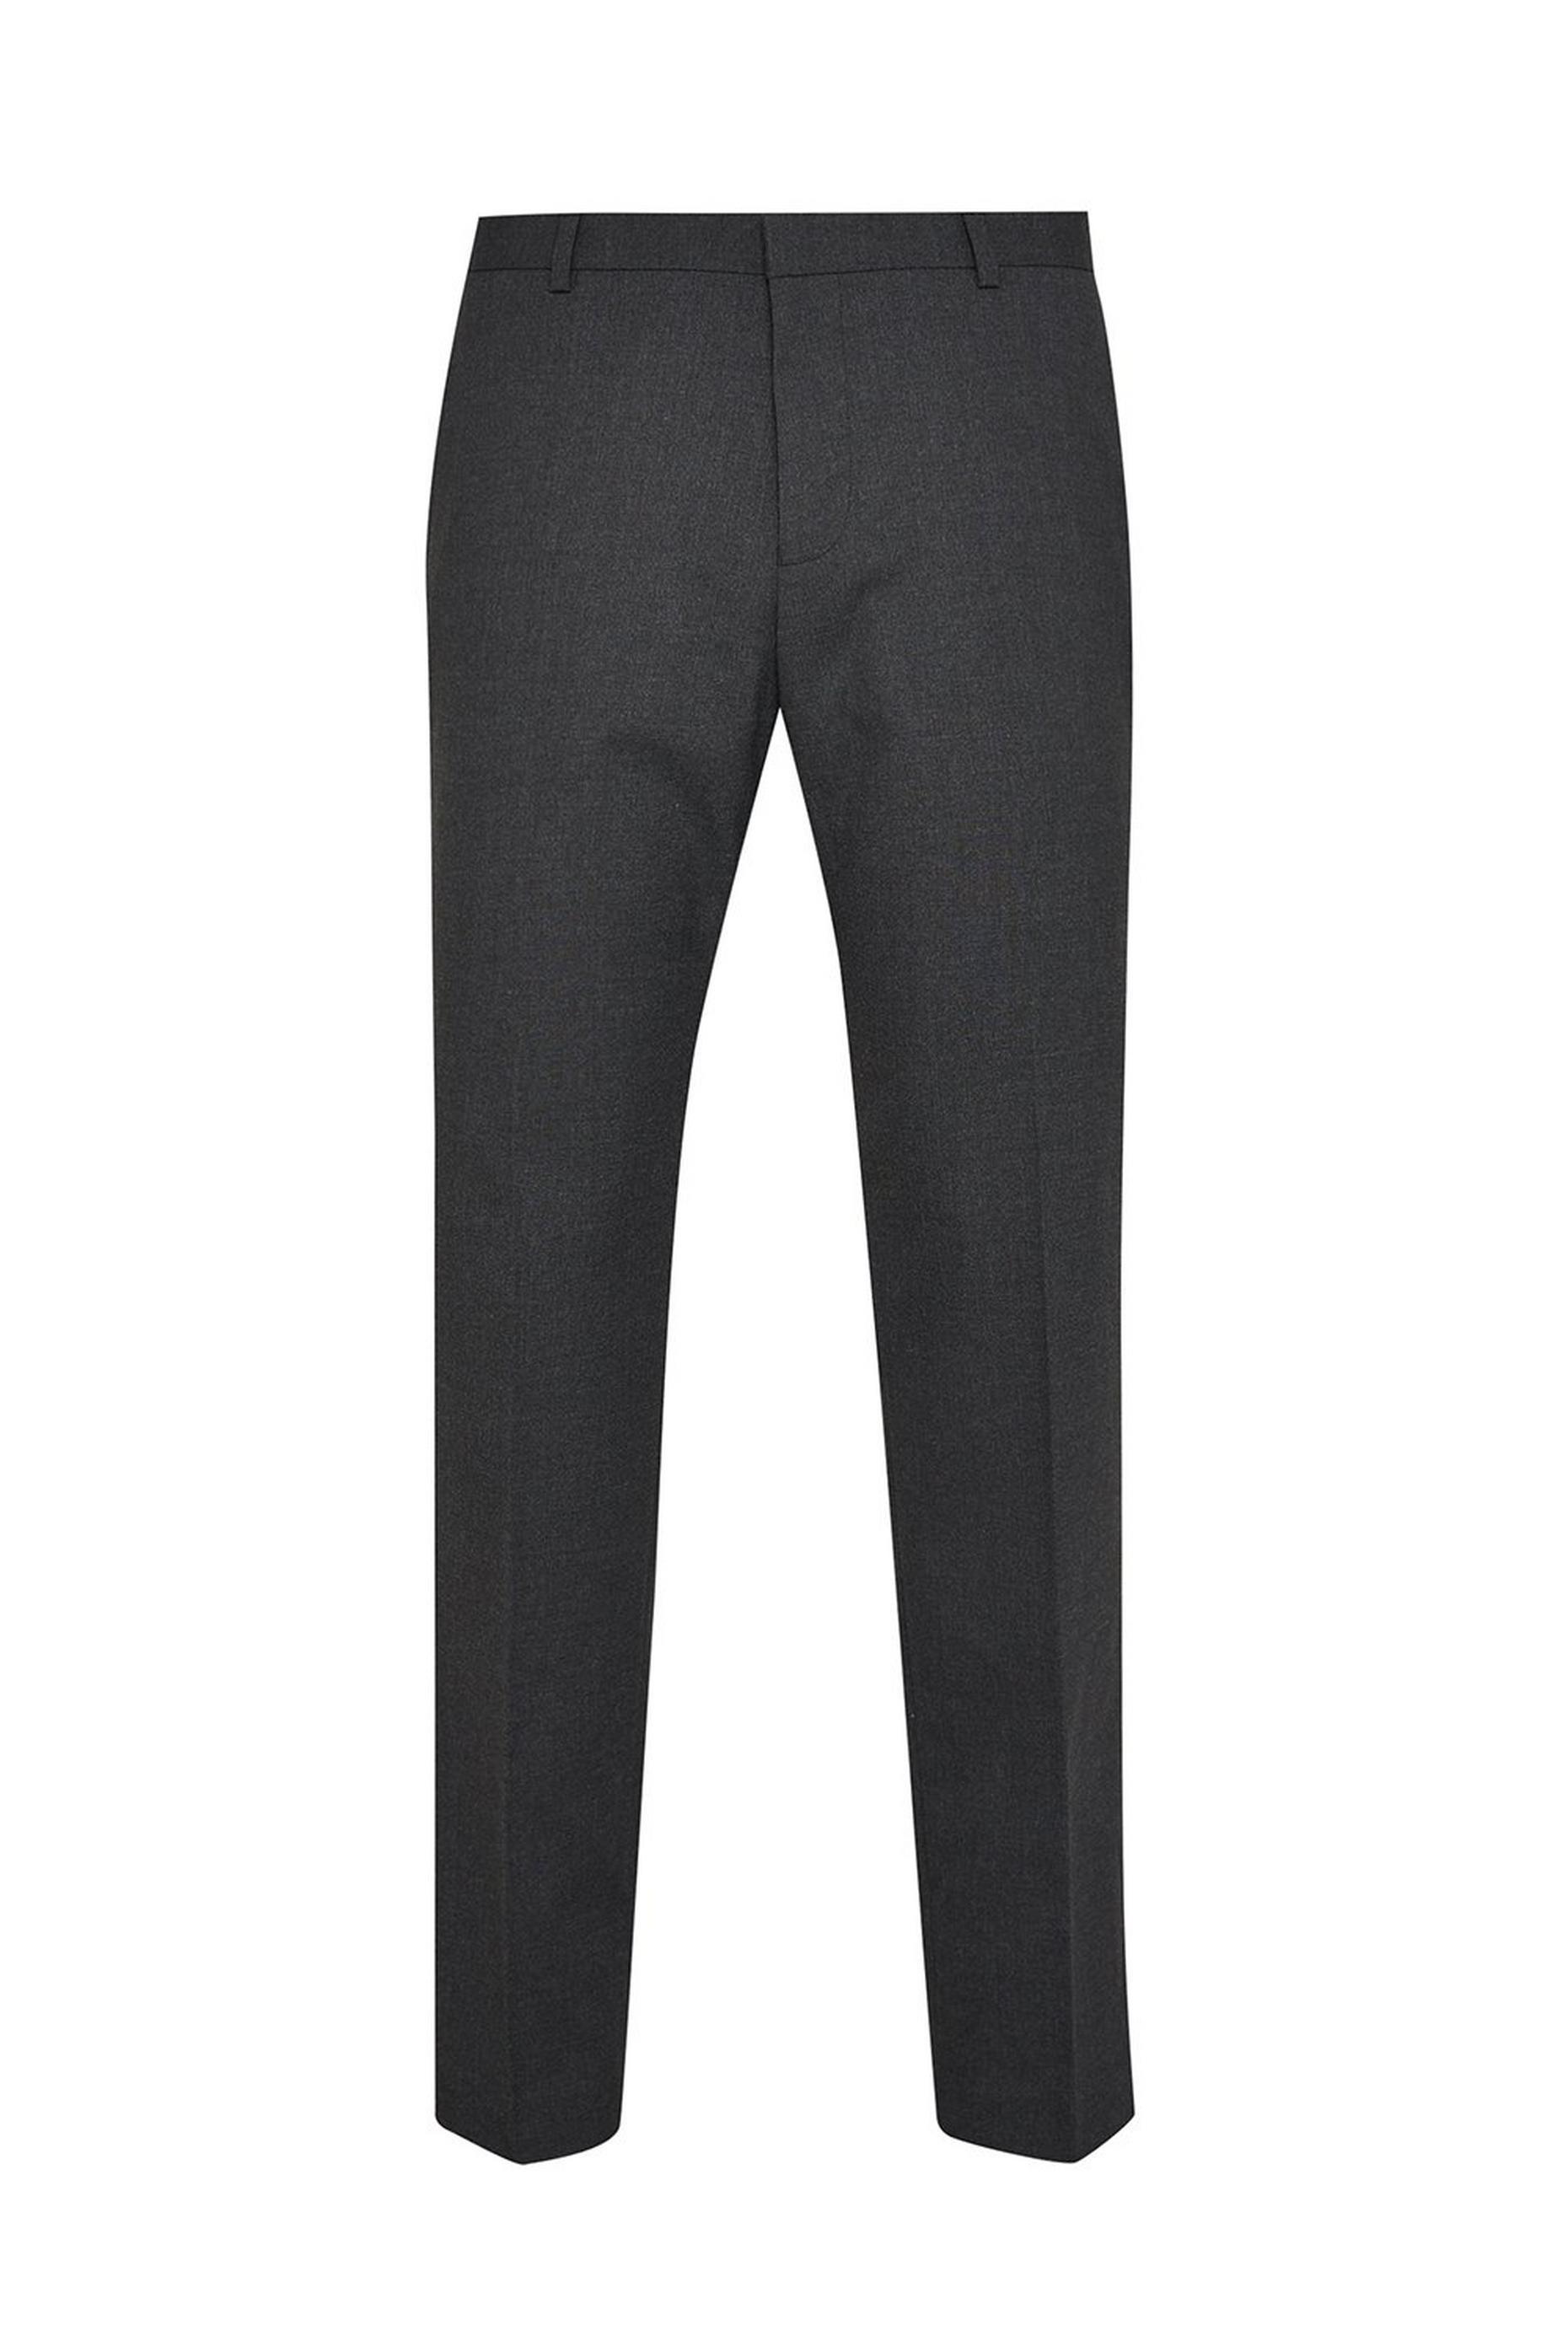 Grey Essential Tailored Fit Suit Trousers